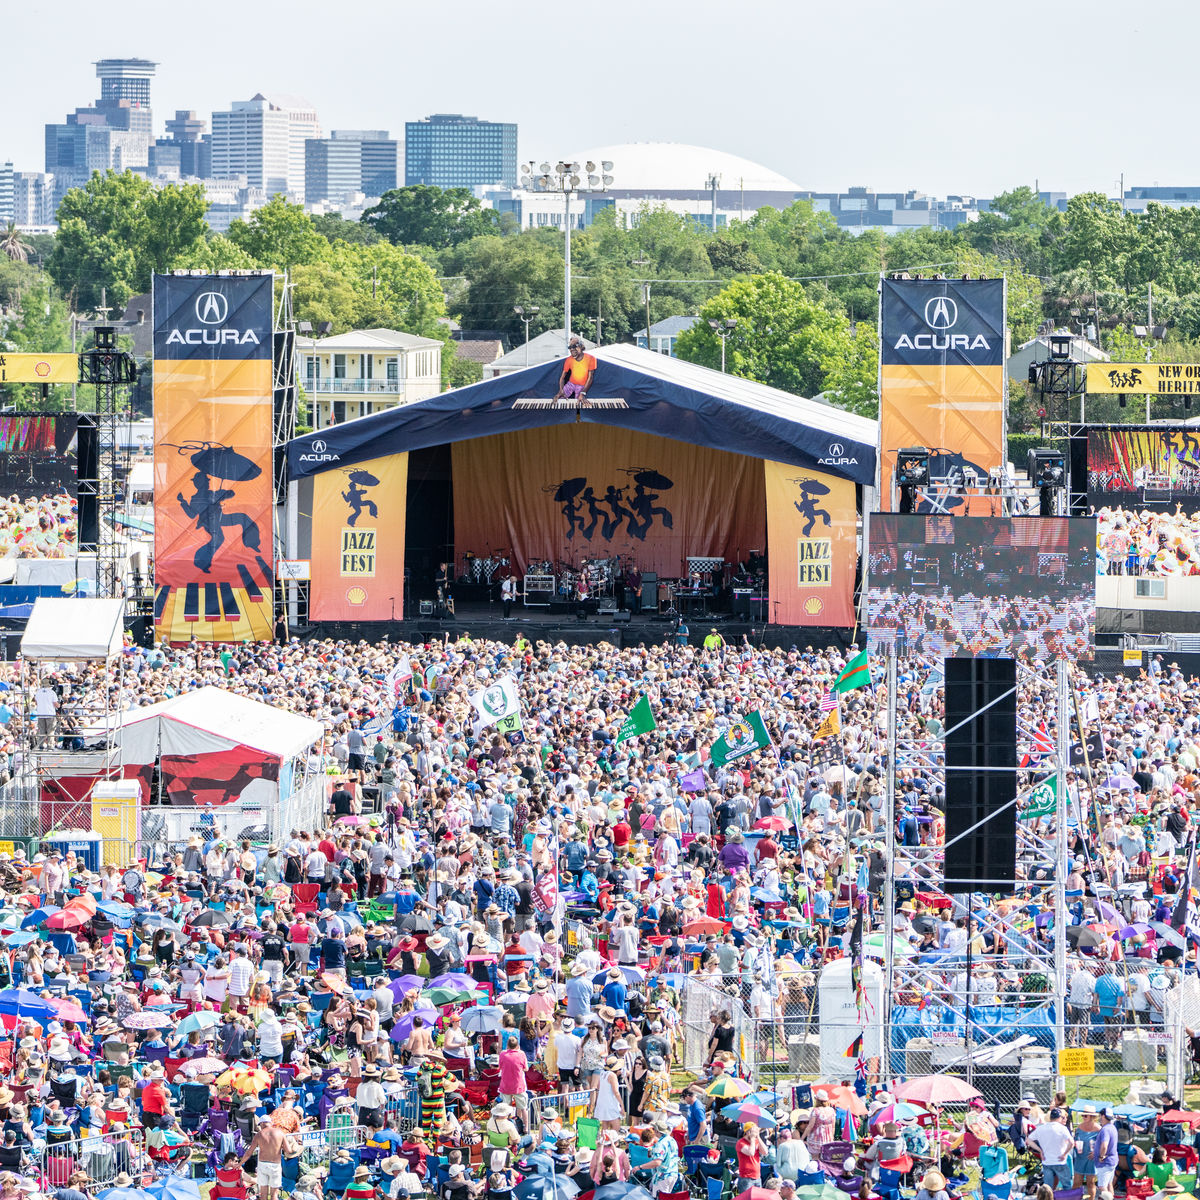 Aerial image of the crowd and stage at the music festival